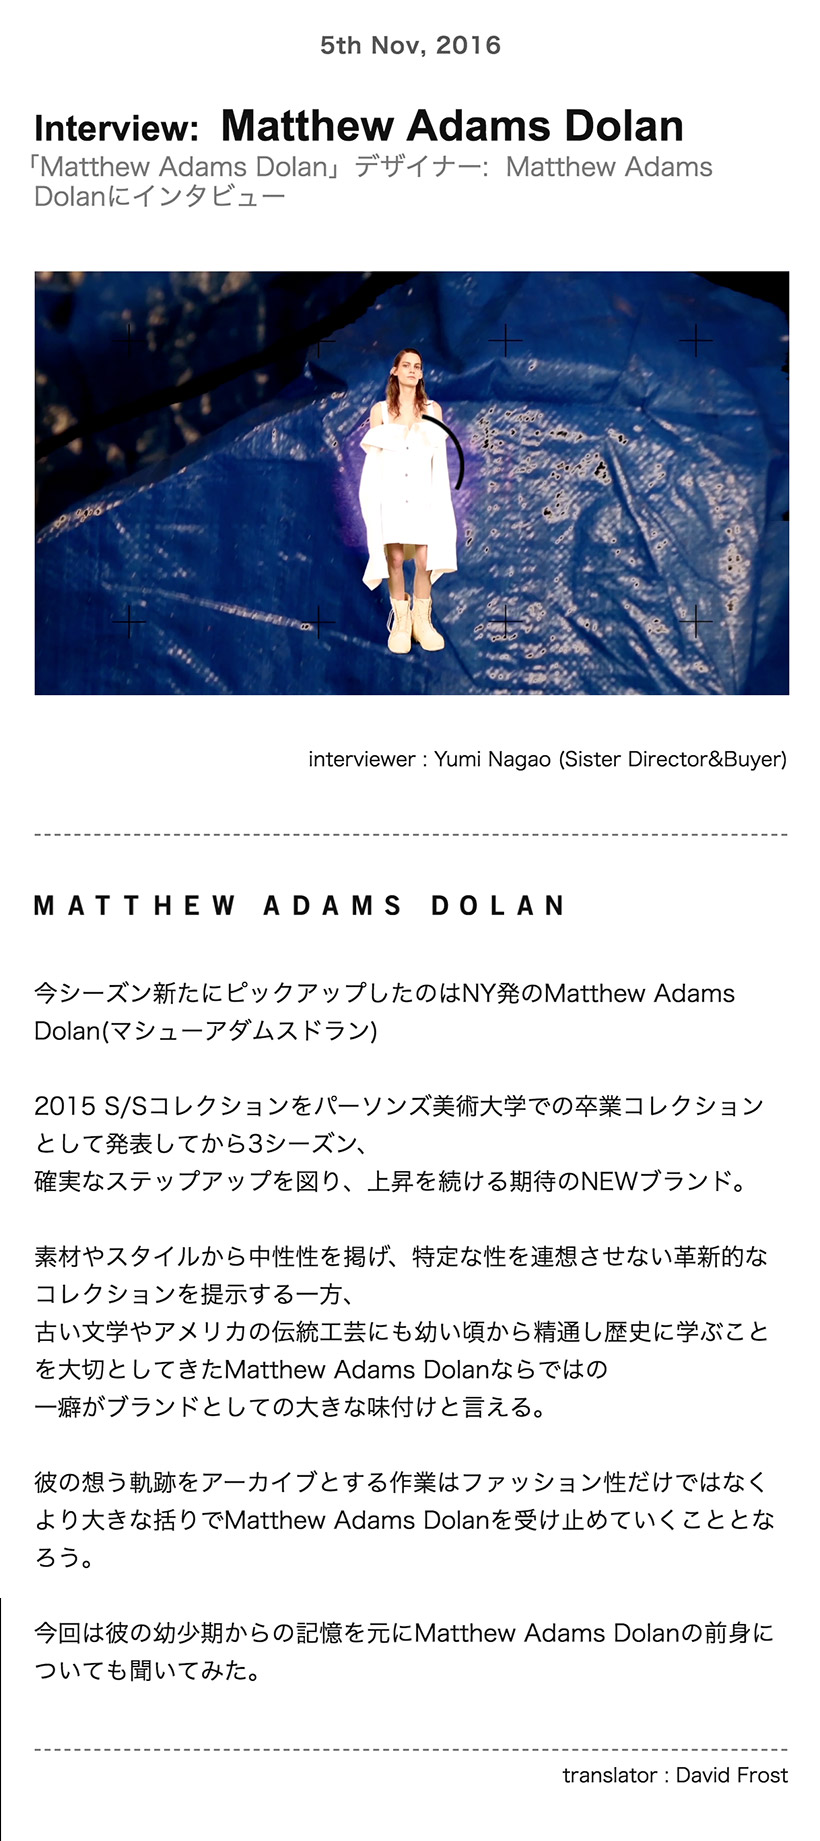 Matthew Adams Dolan Special Interview